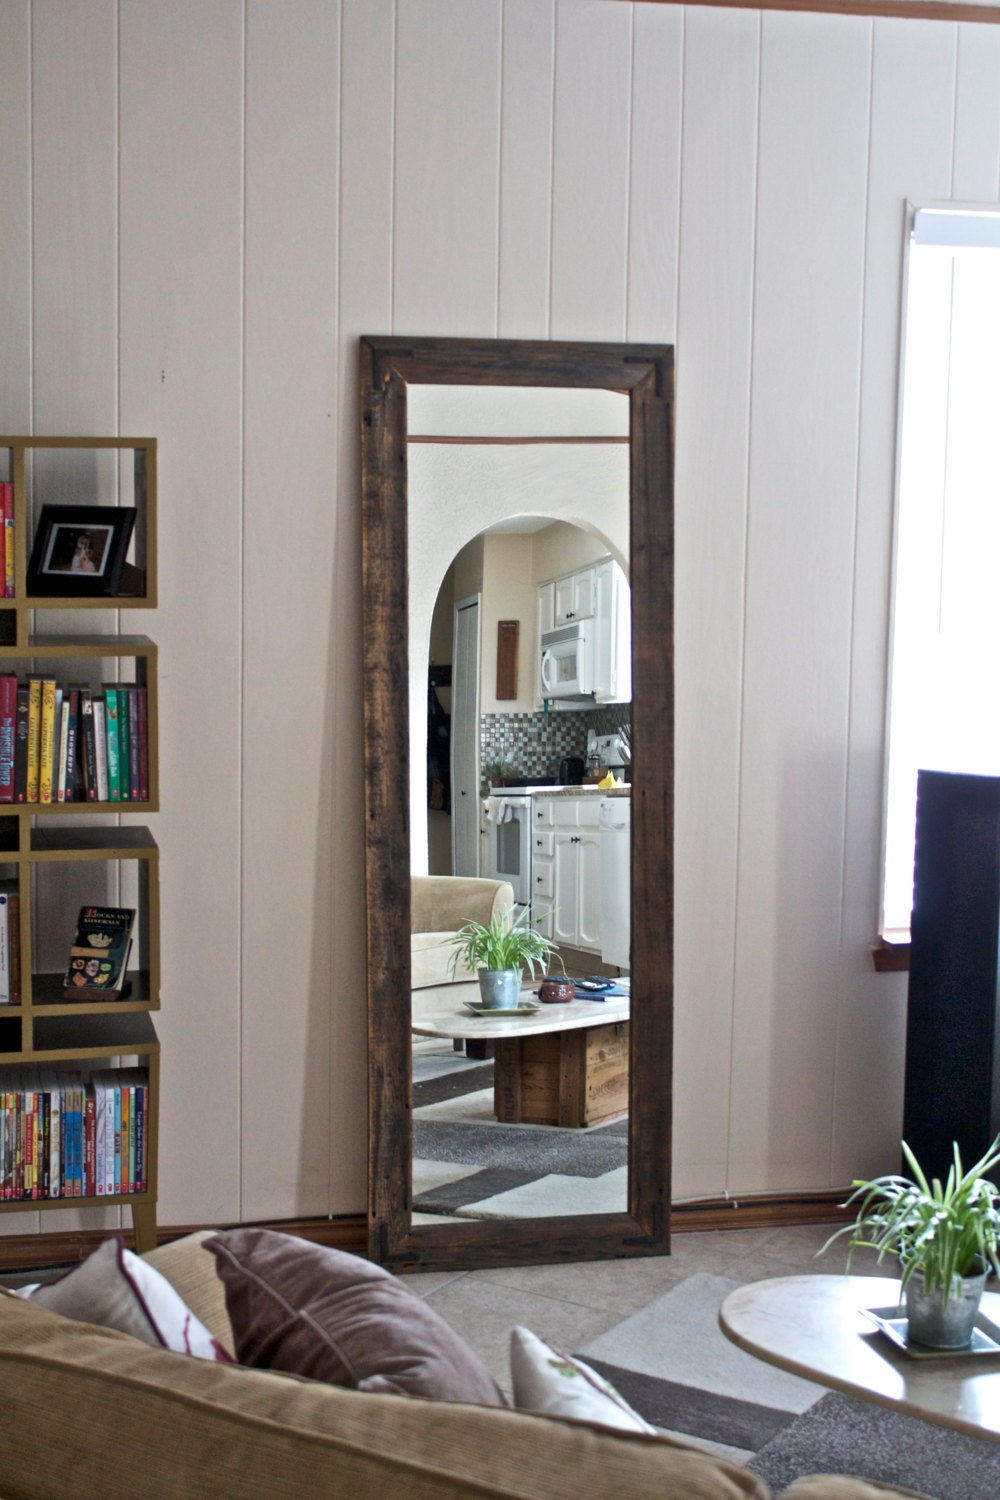 Floor mirror wardrobe mirror reclaimed wood by hurdandhoney for Small long mirrors